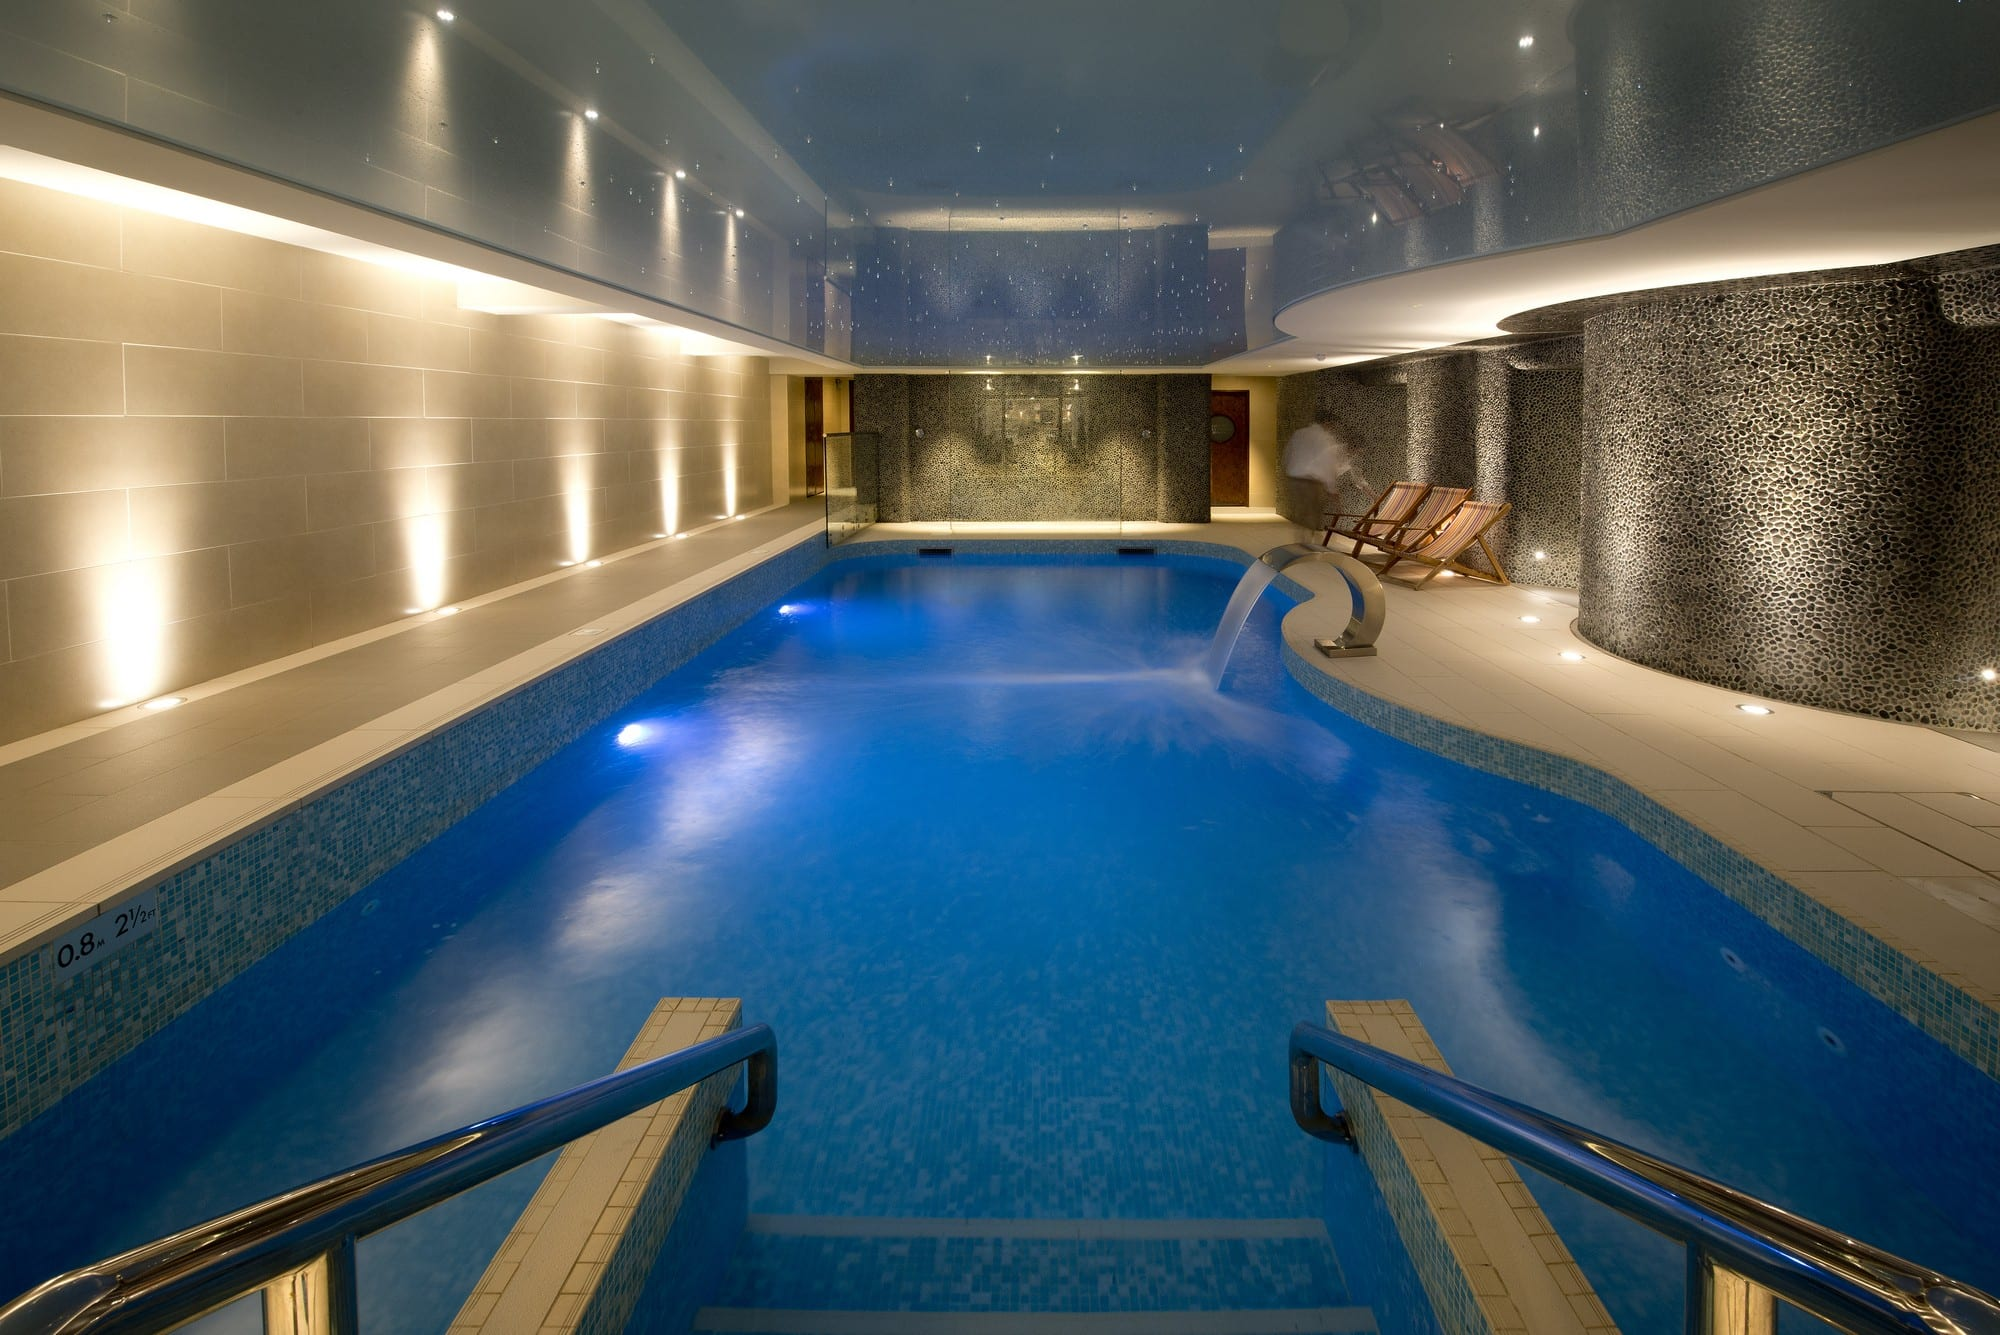 The headland health spa lilly lewarne - Hotels with swimming pools cornwall ...